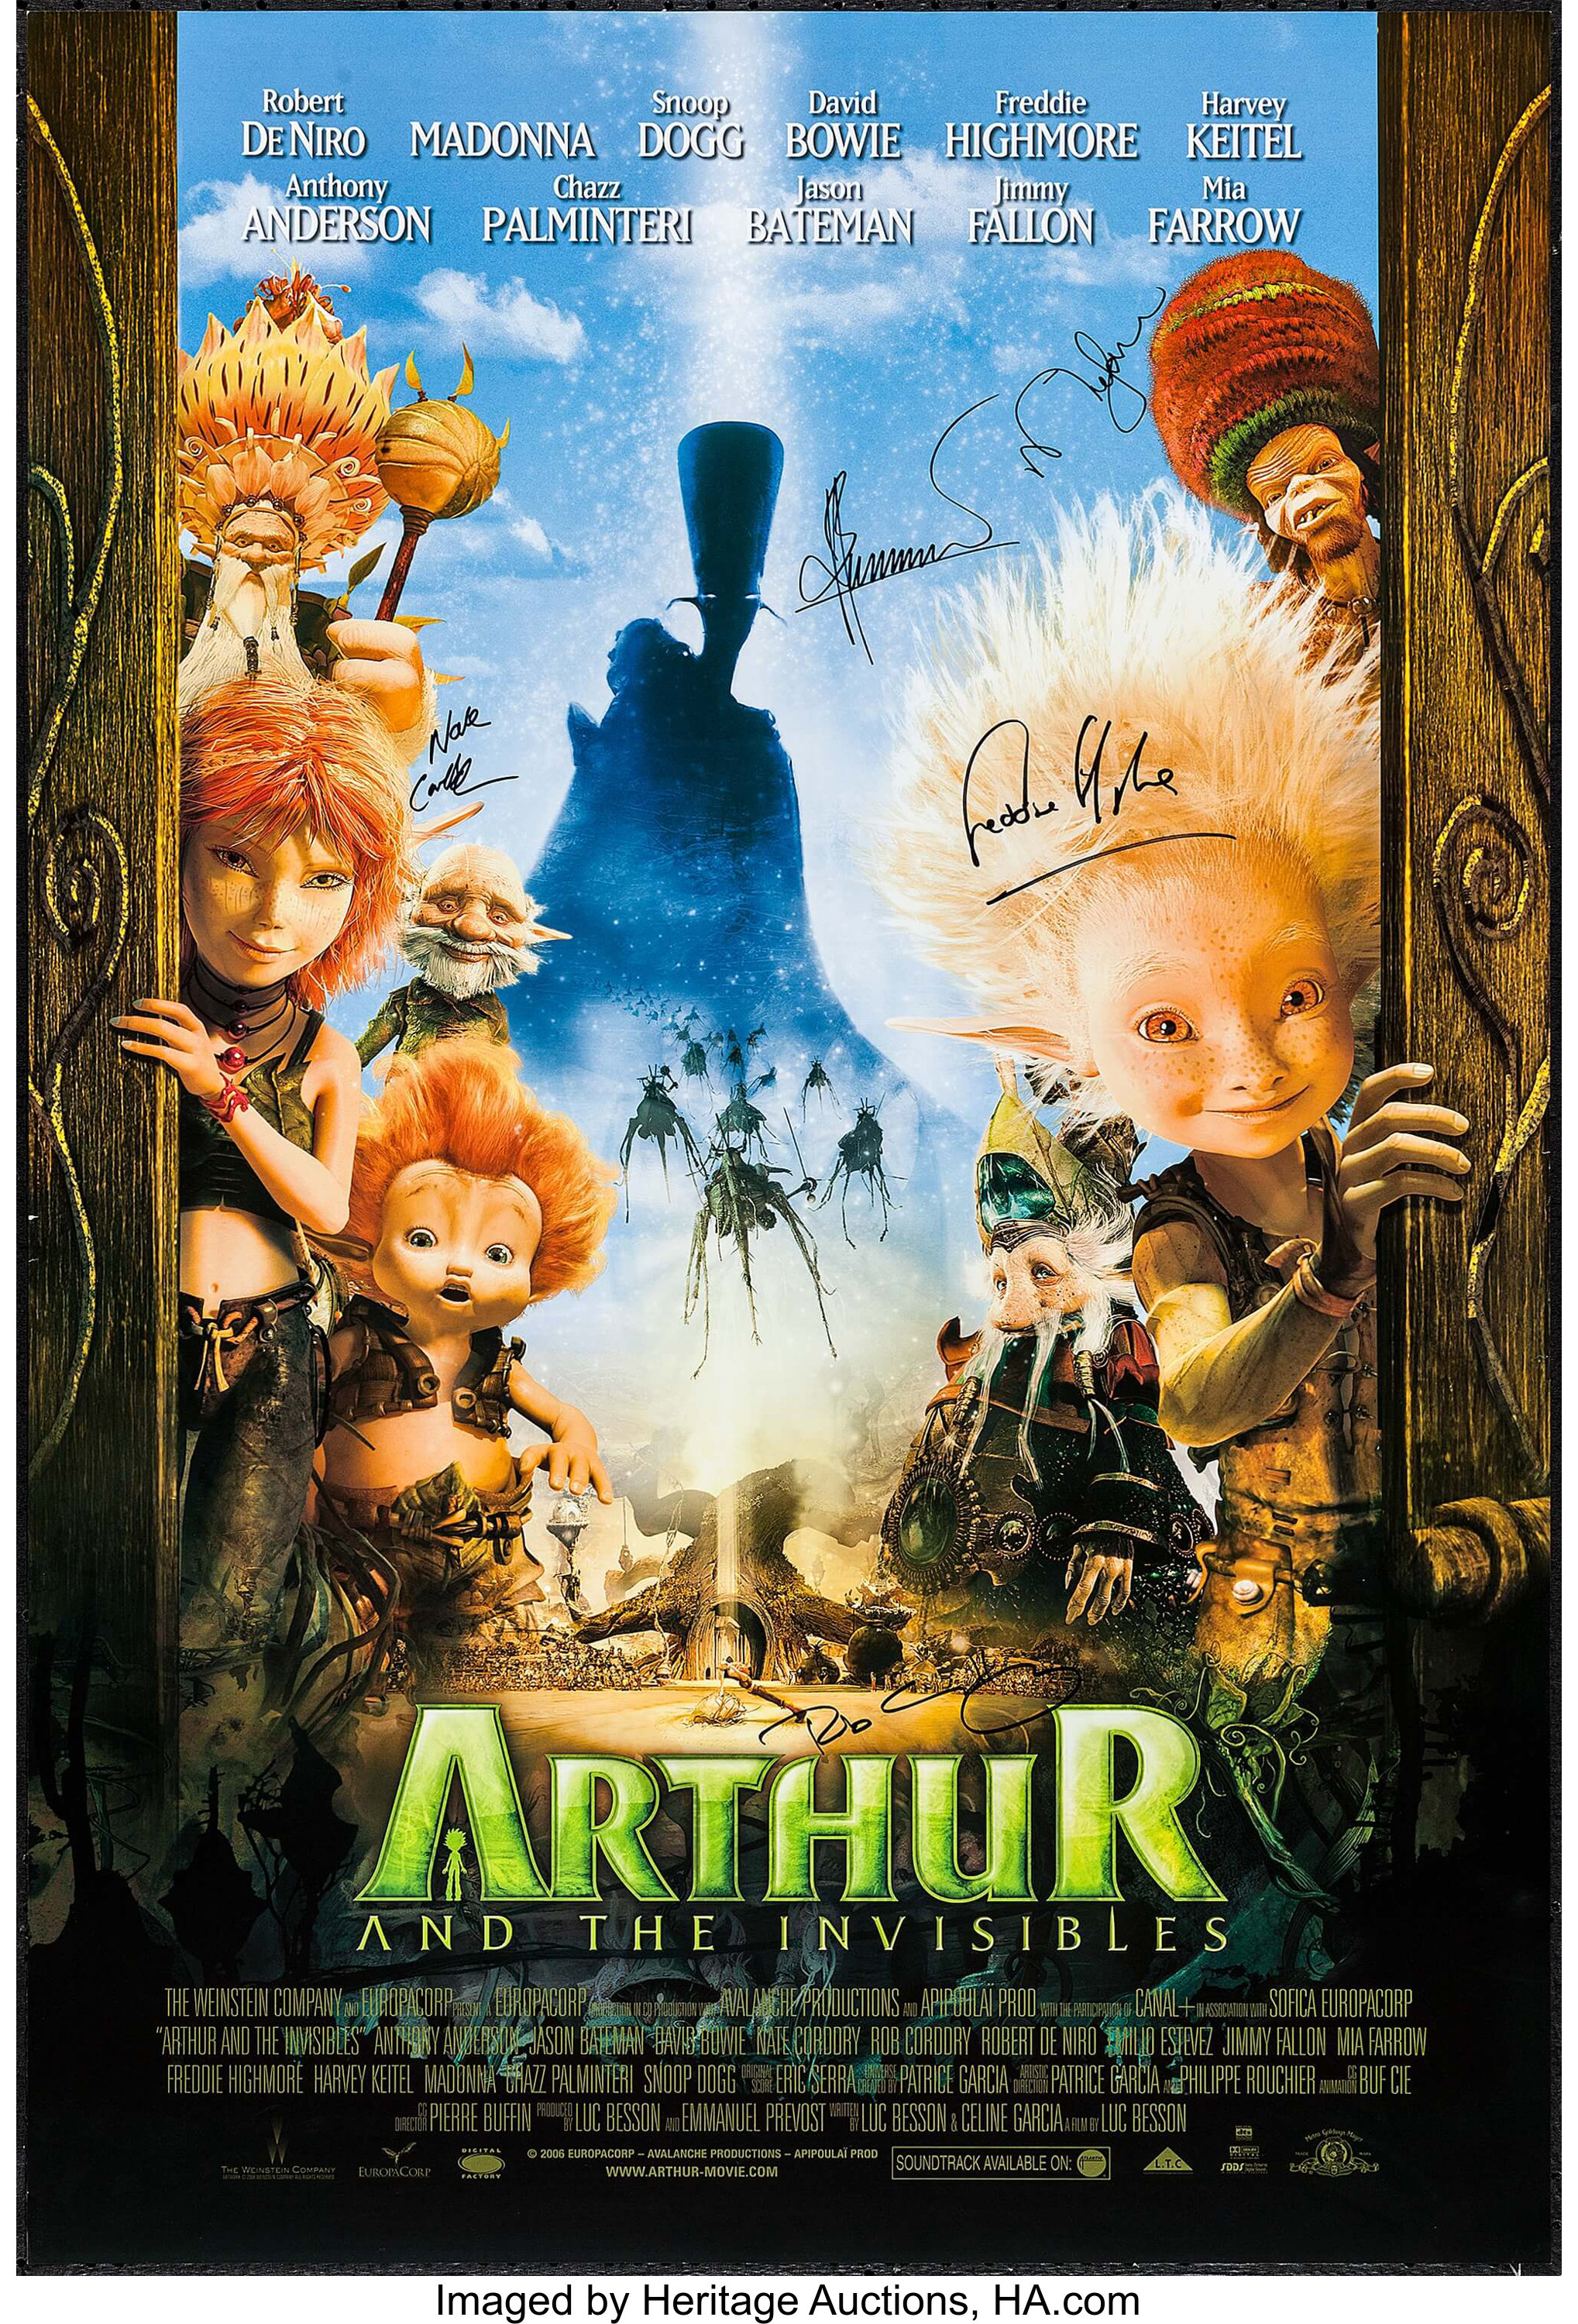 Arthur And The Invisibles Mgm 2006 Autographed One Sheet 27 X Lot 53029 Heritage Auctions